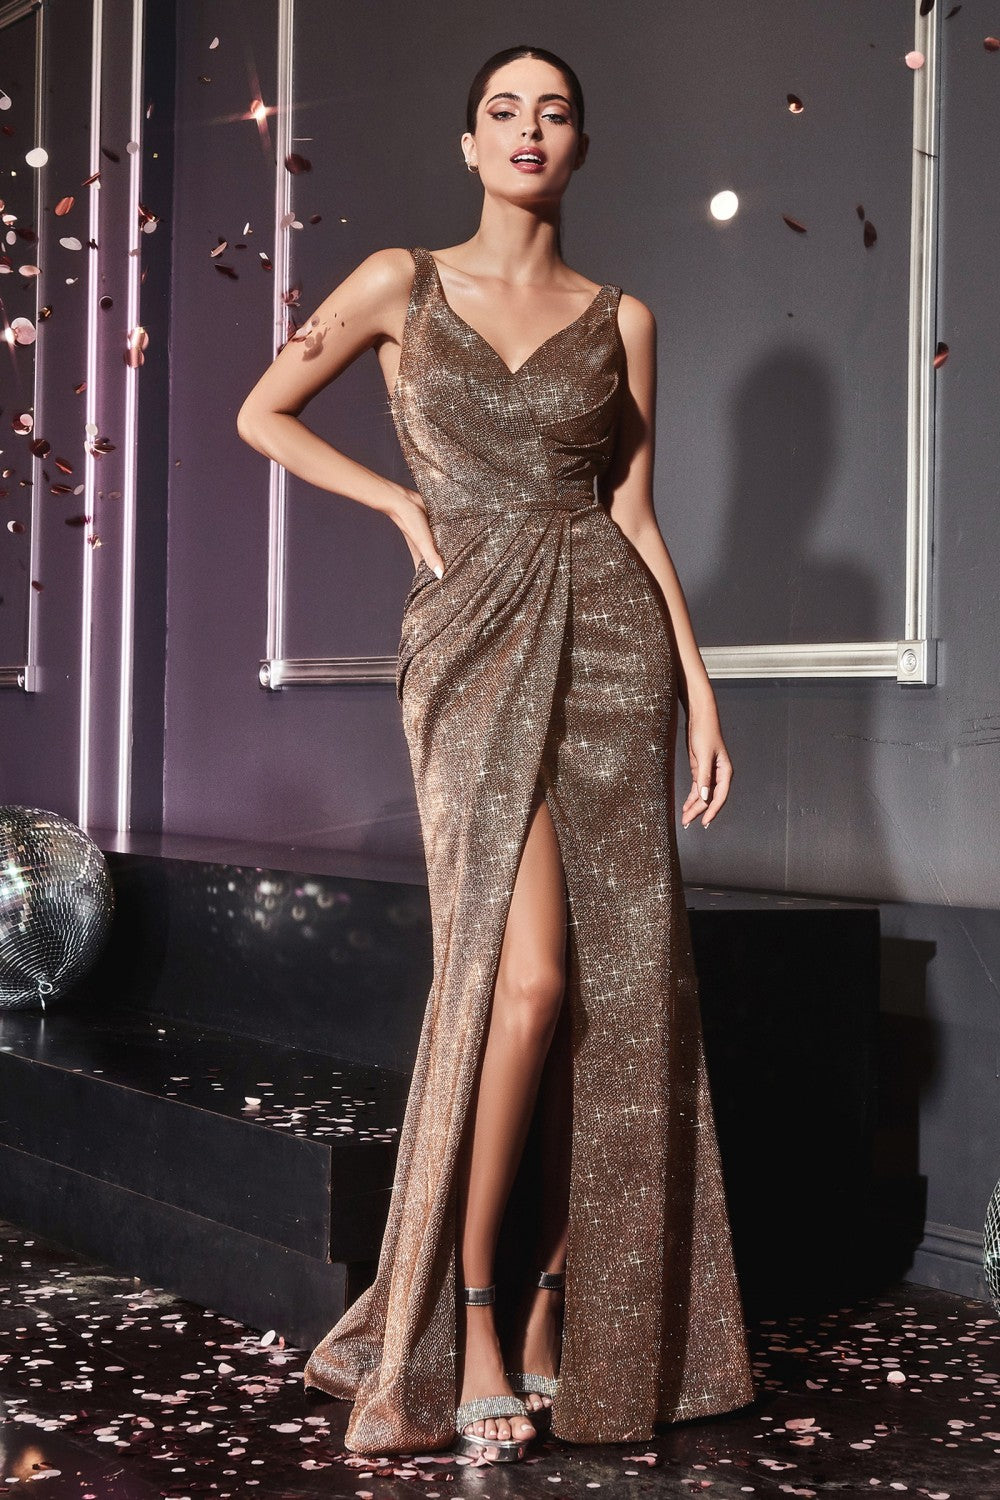 CD CF165 - Fit & Flare Prom Gown with Metallic Glitter Fabric & High Leg Slit - Diggz Prom